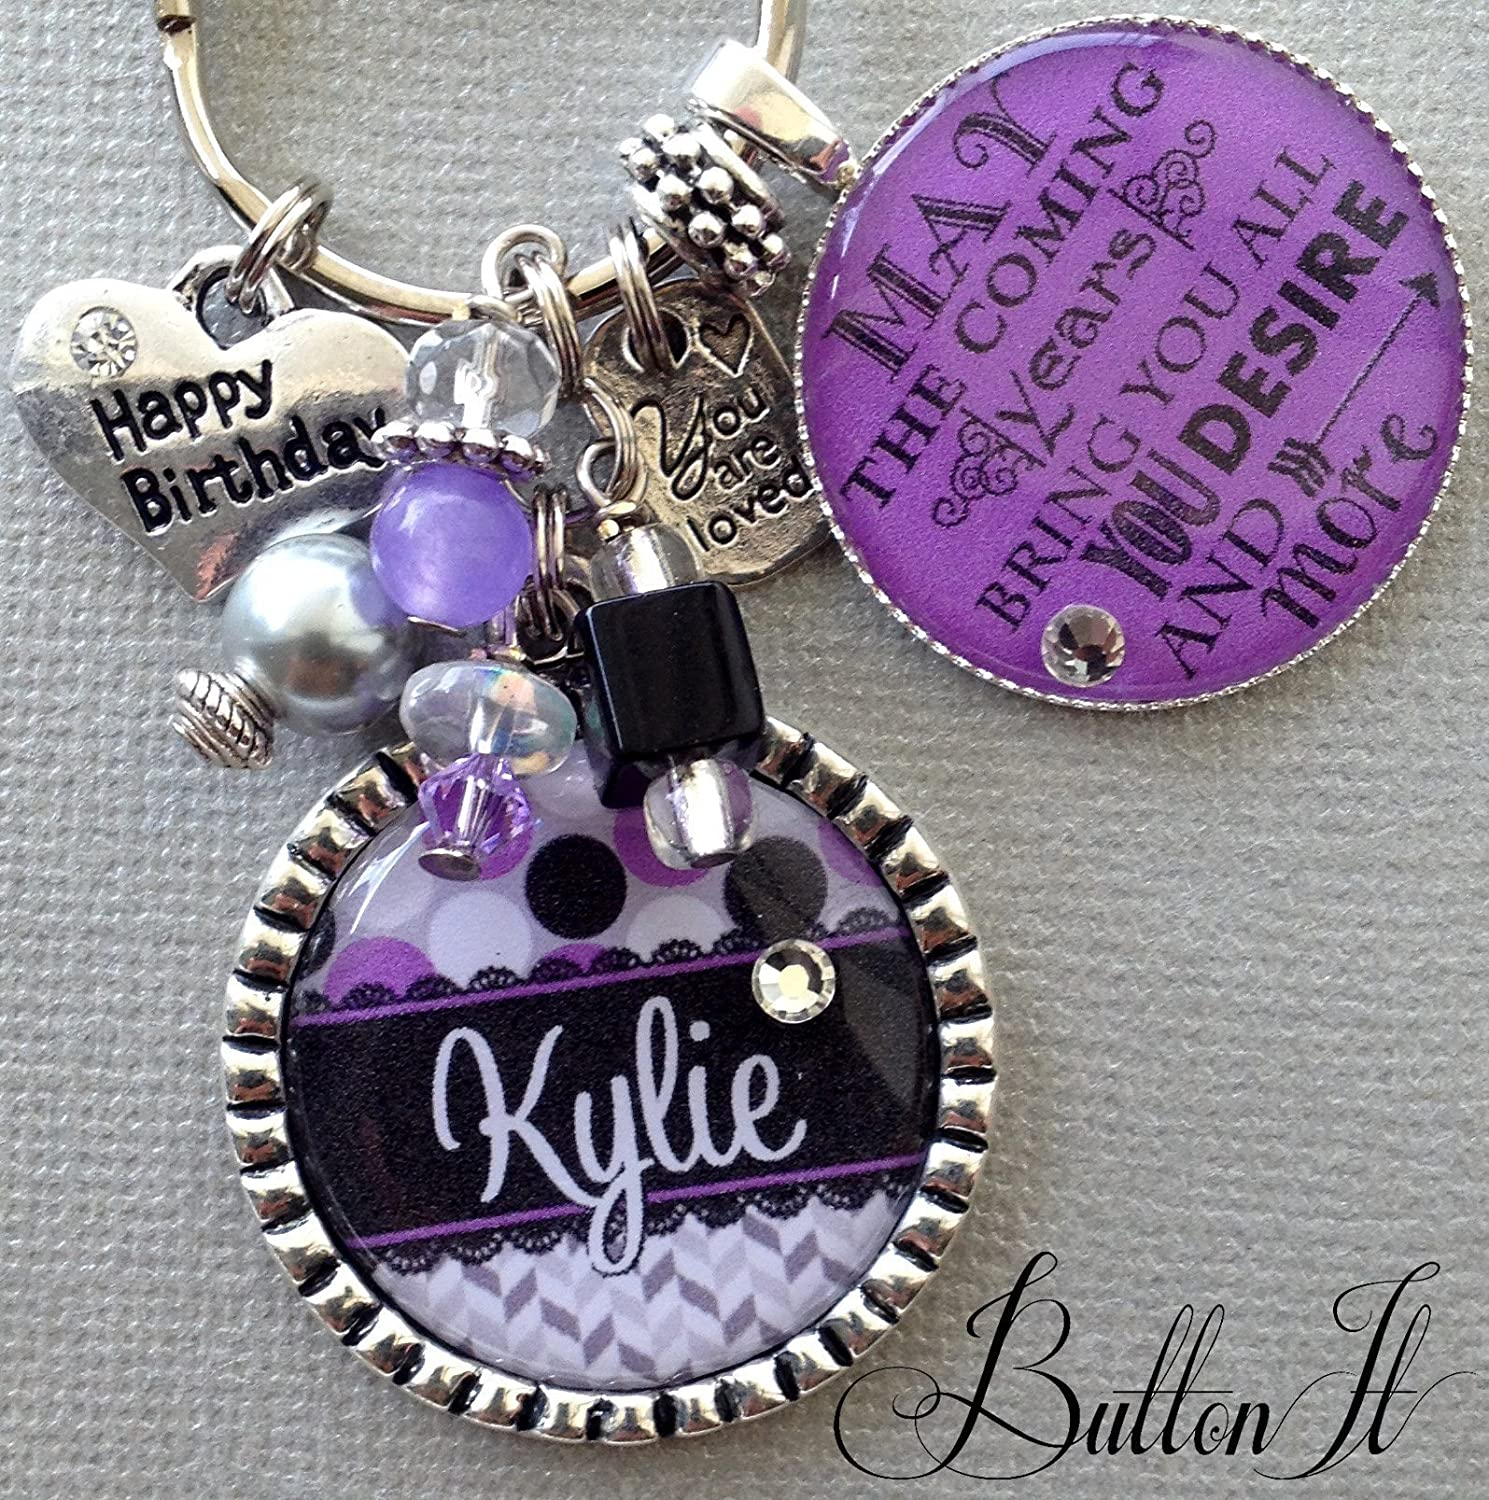 Happy Birthday Sweet 16 Key Chain Personalized Gift Daughter Never Drive Faster Than Guardian Angel Can Fly 16th For